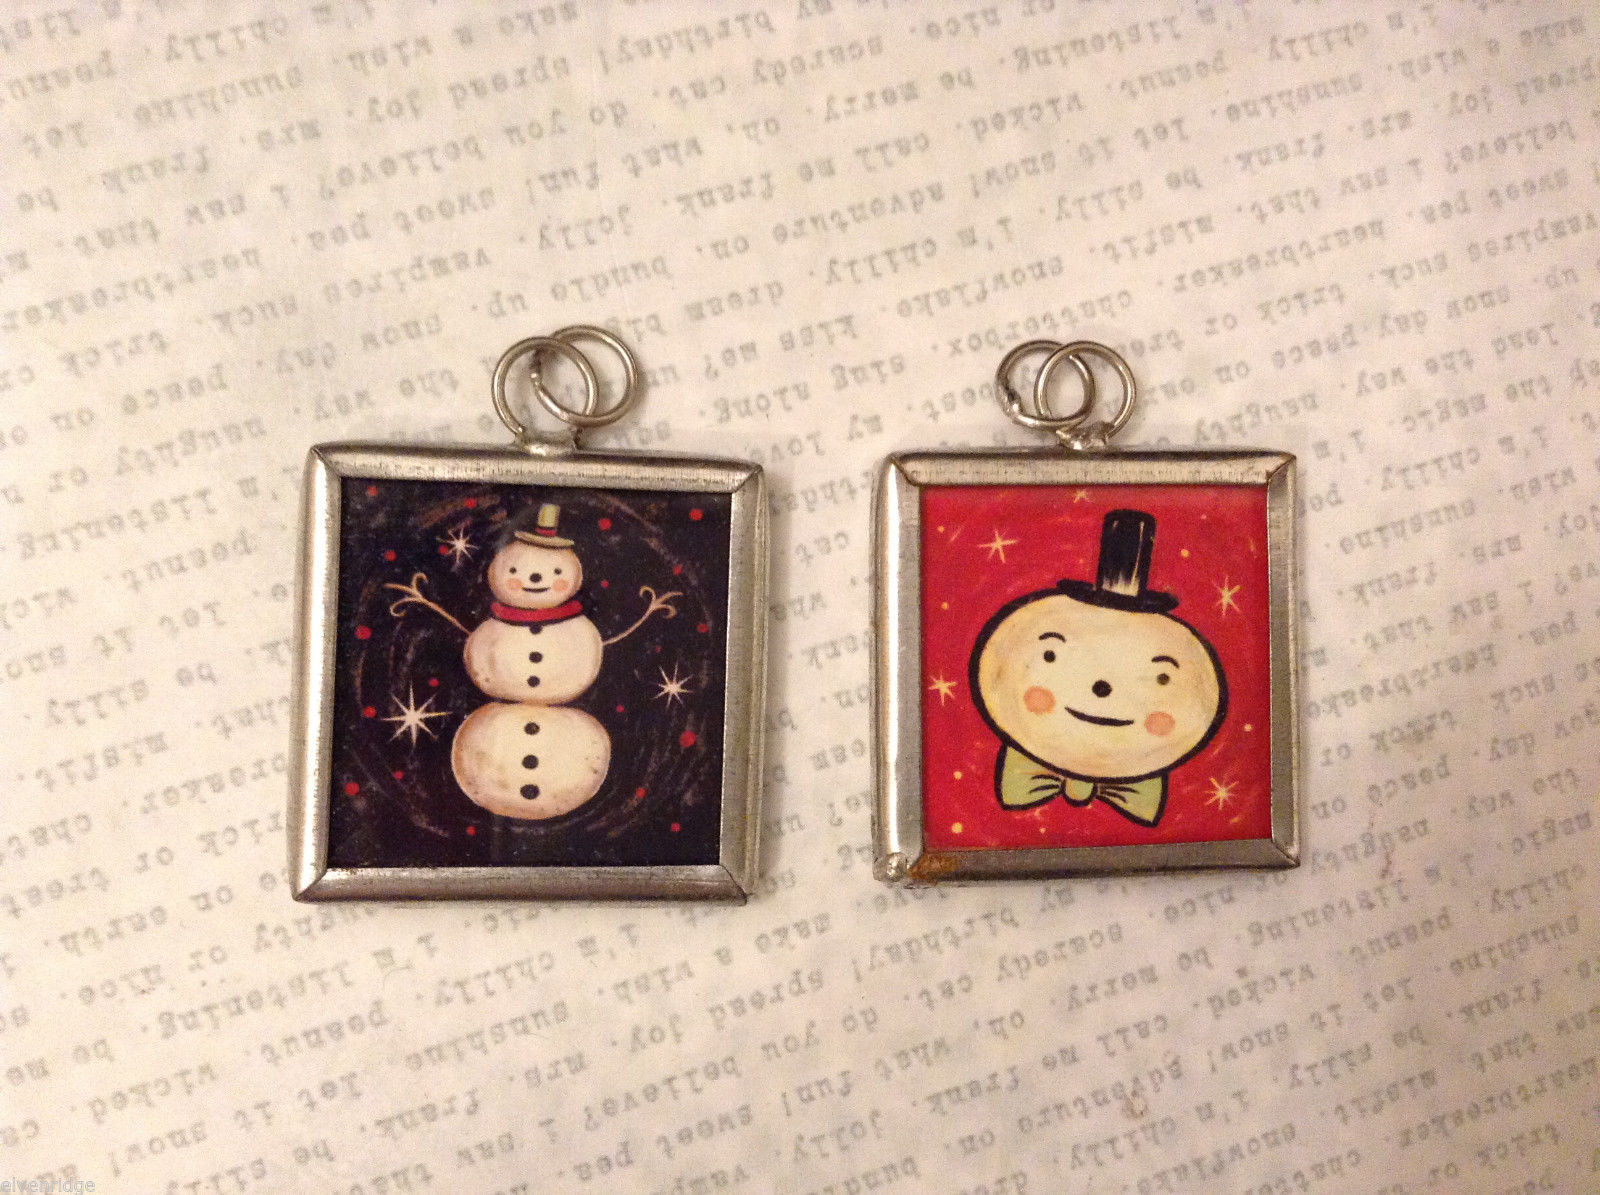 2 sided charm tag in metal frame vintage style - Smowman Black/ Snowman Head Red